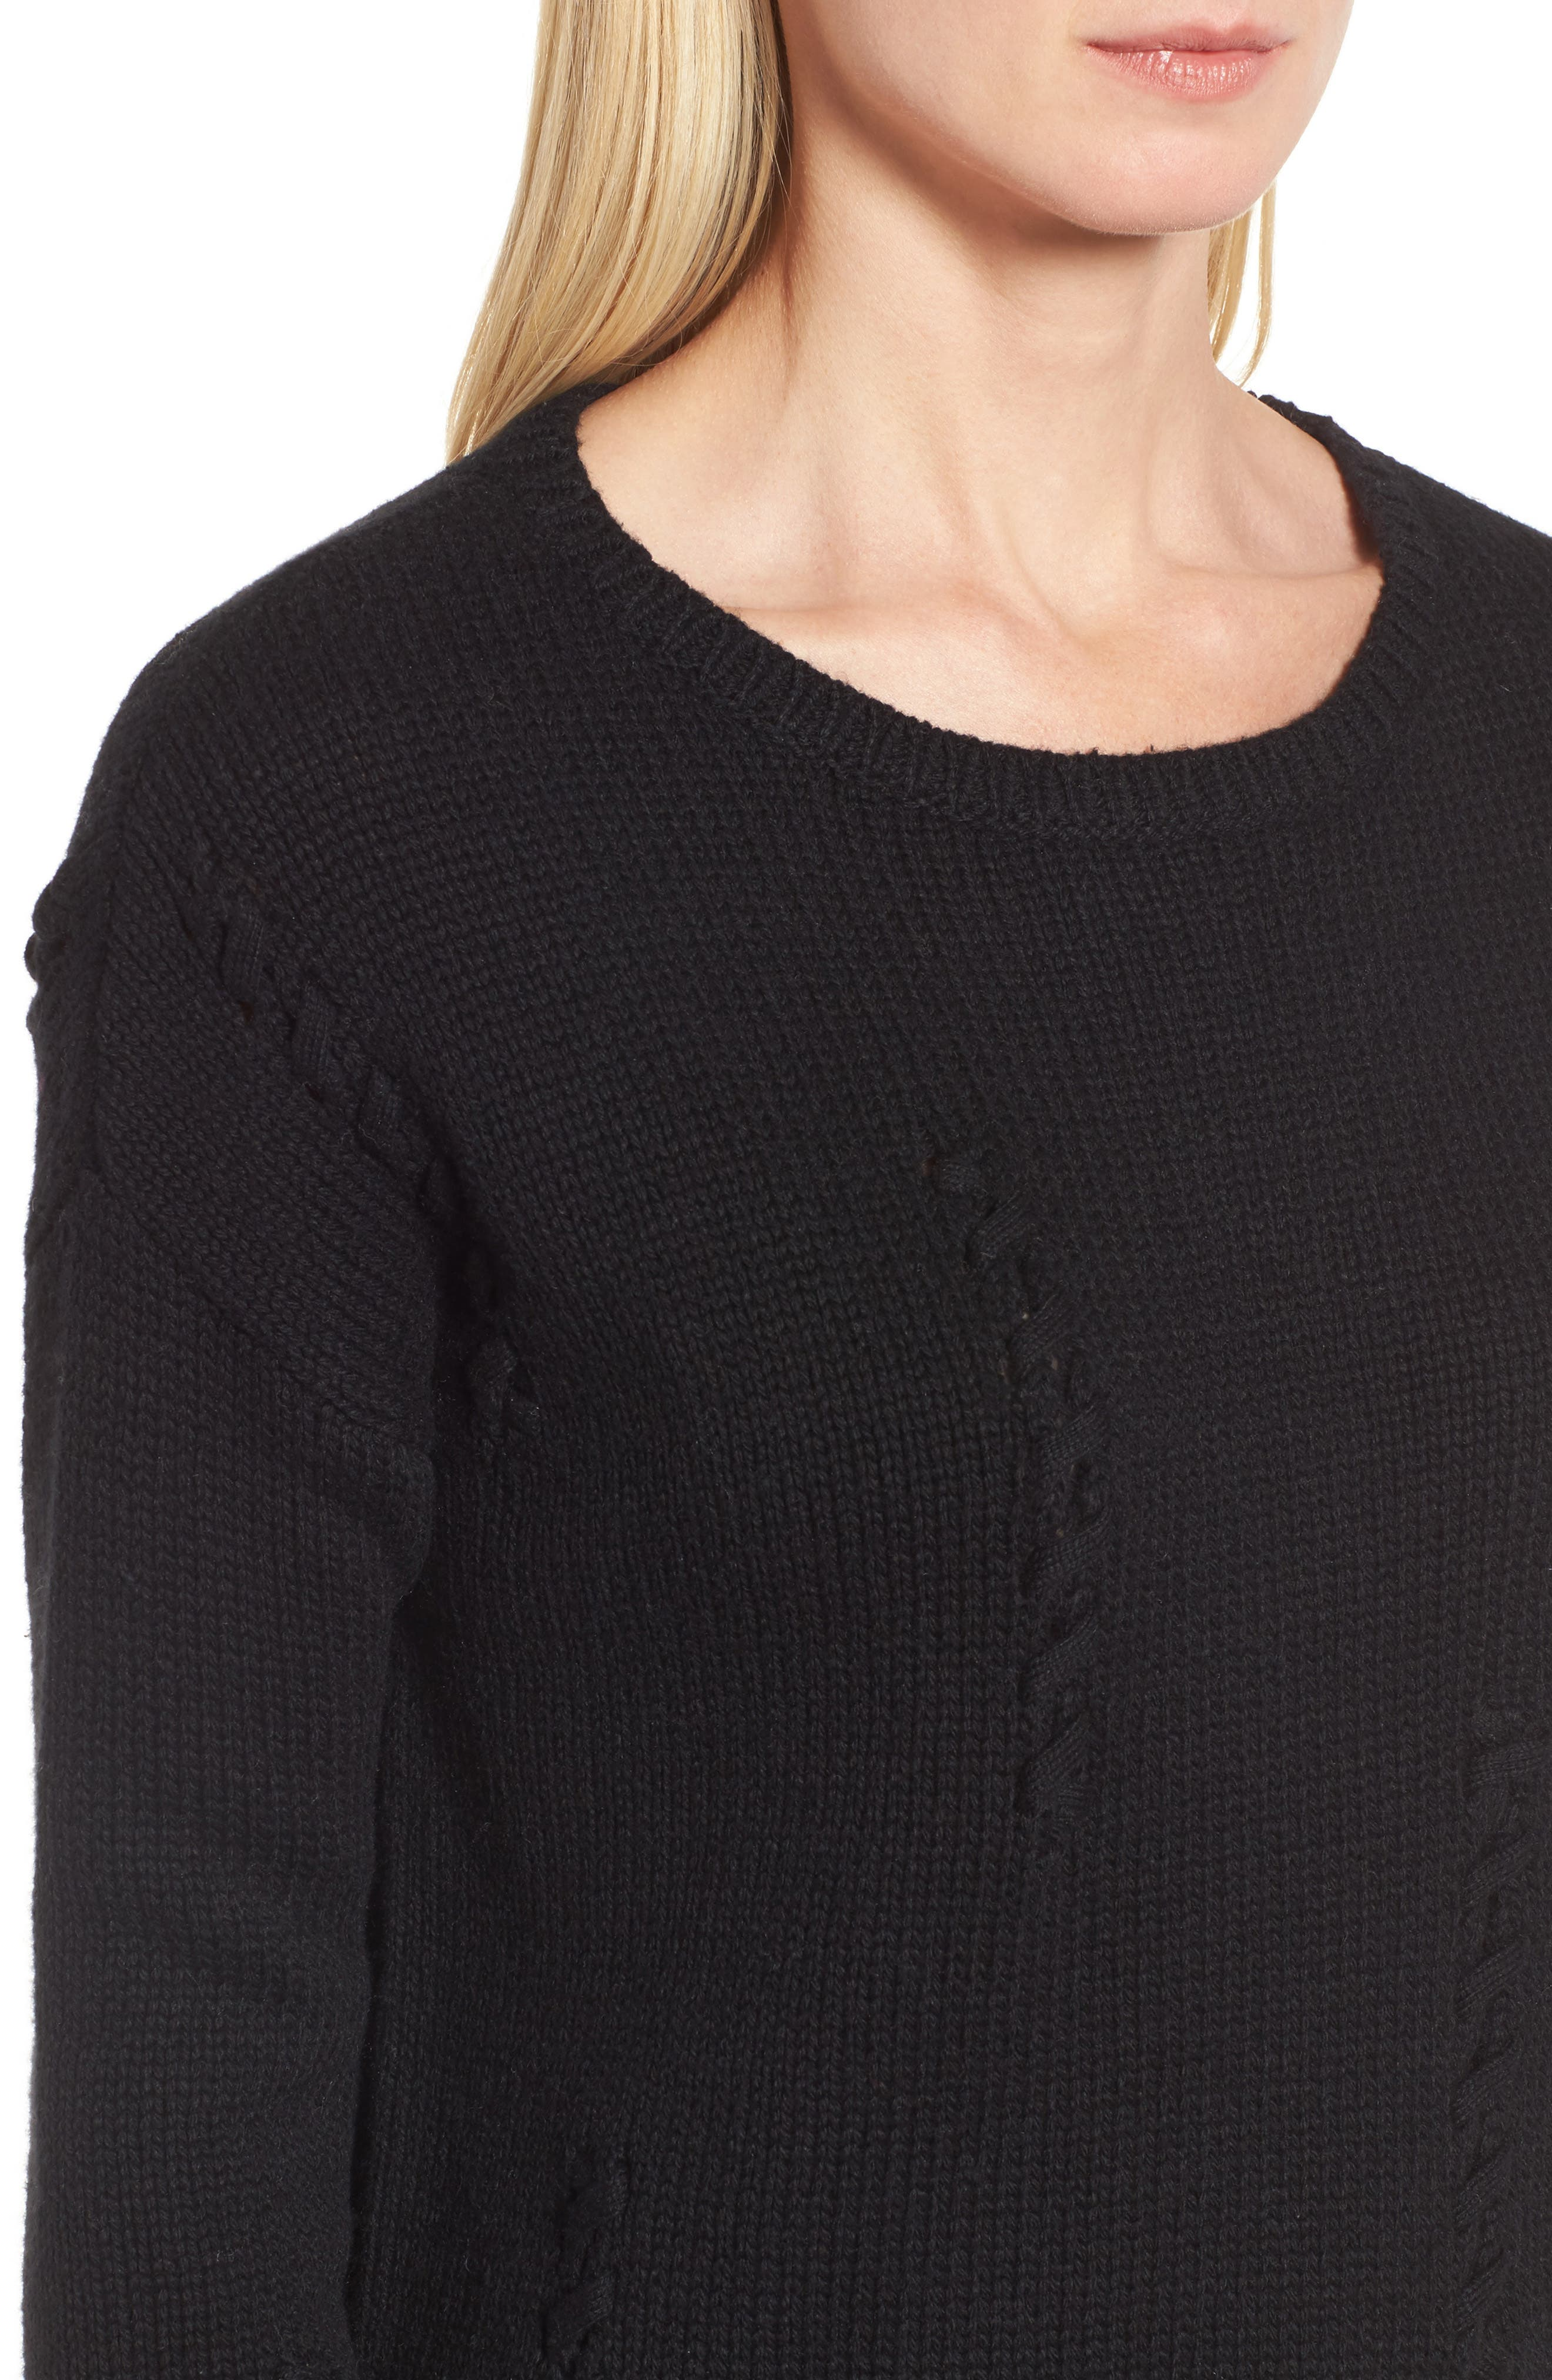 Whipstitch Detail Sweater,                             Alternate thumbnail 4, color,                             001